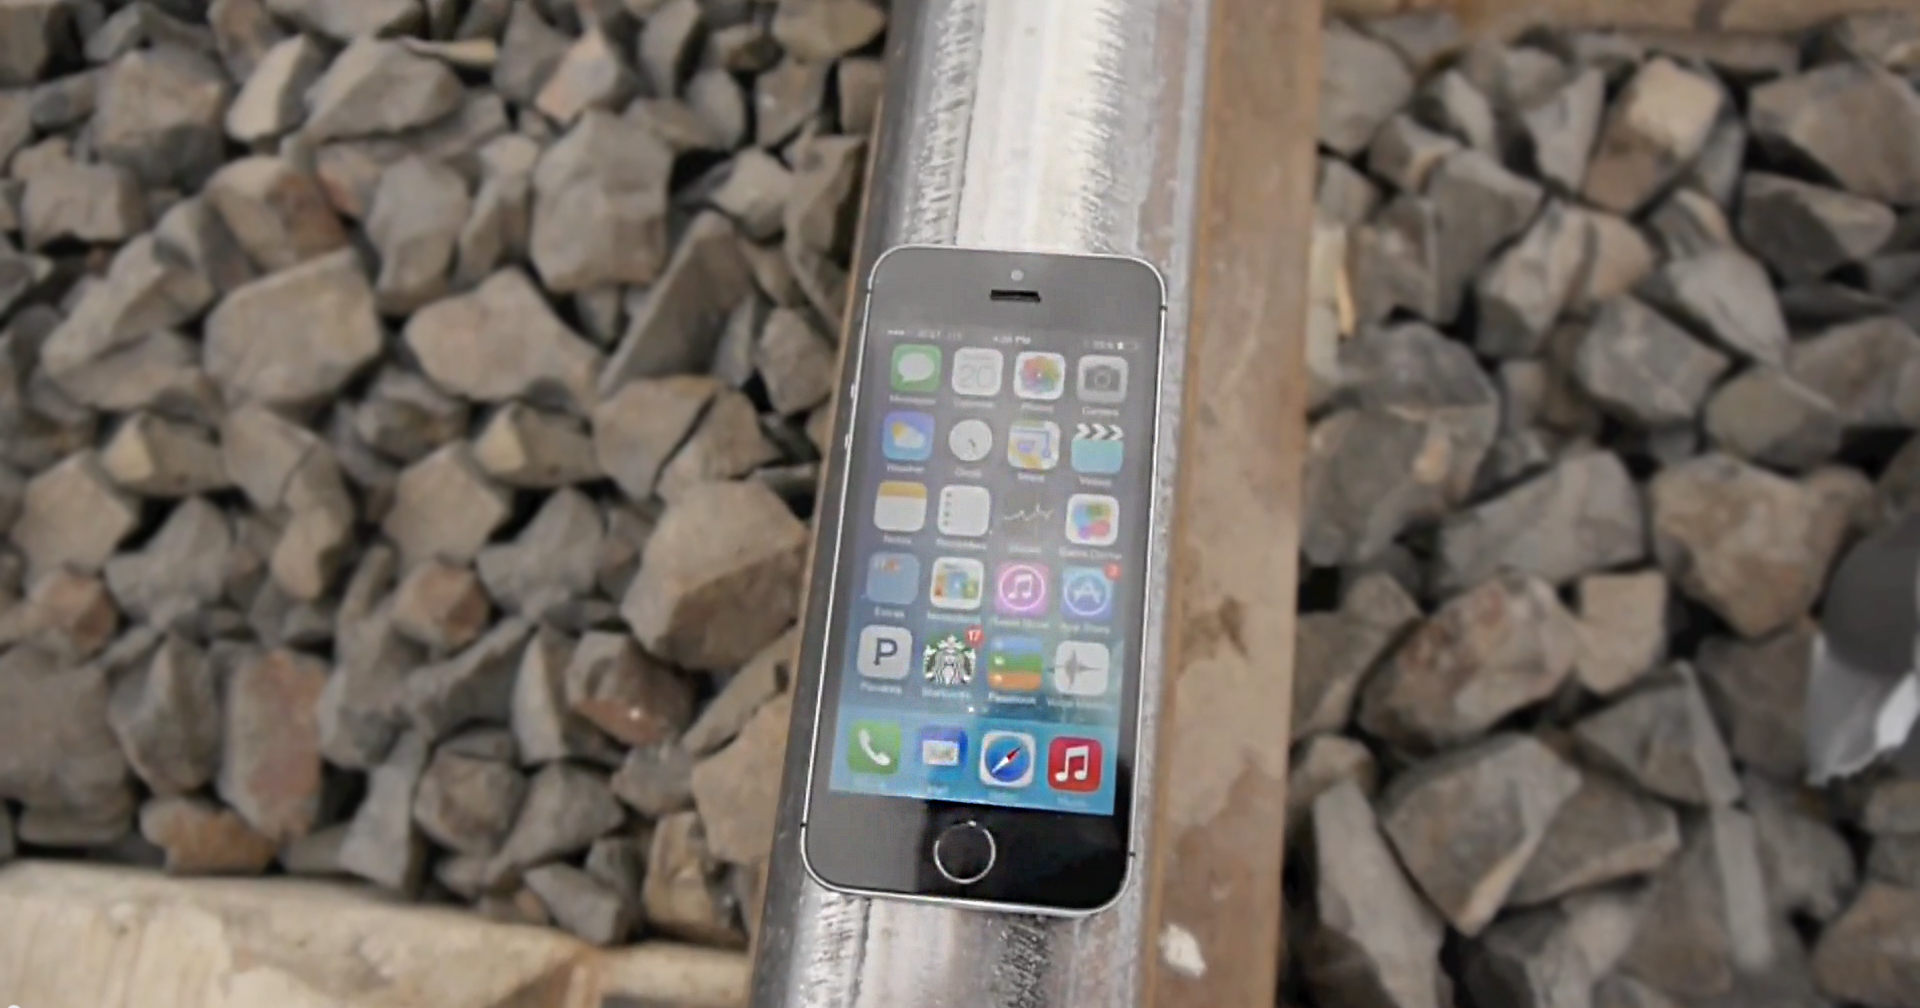 iPhone 5s versus tren: un test inutil, dar care merită văzut [VIDEO]